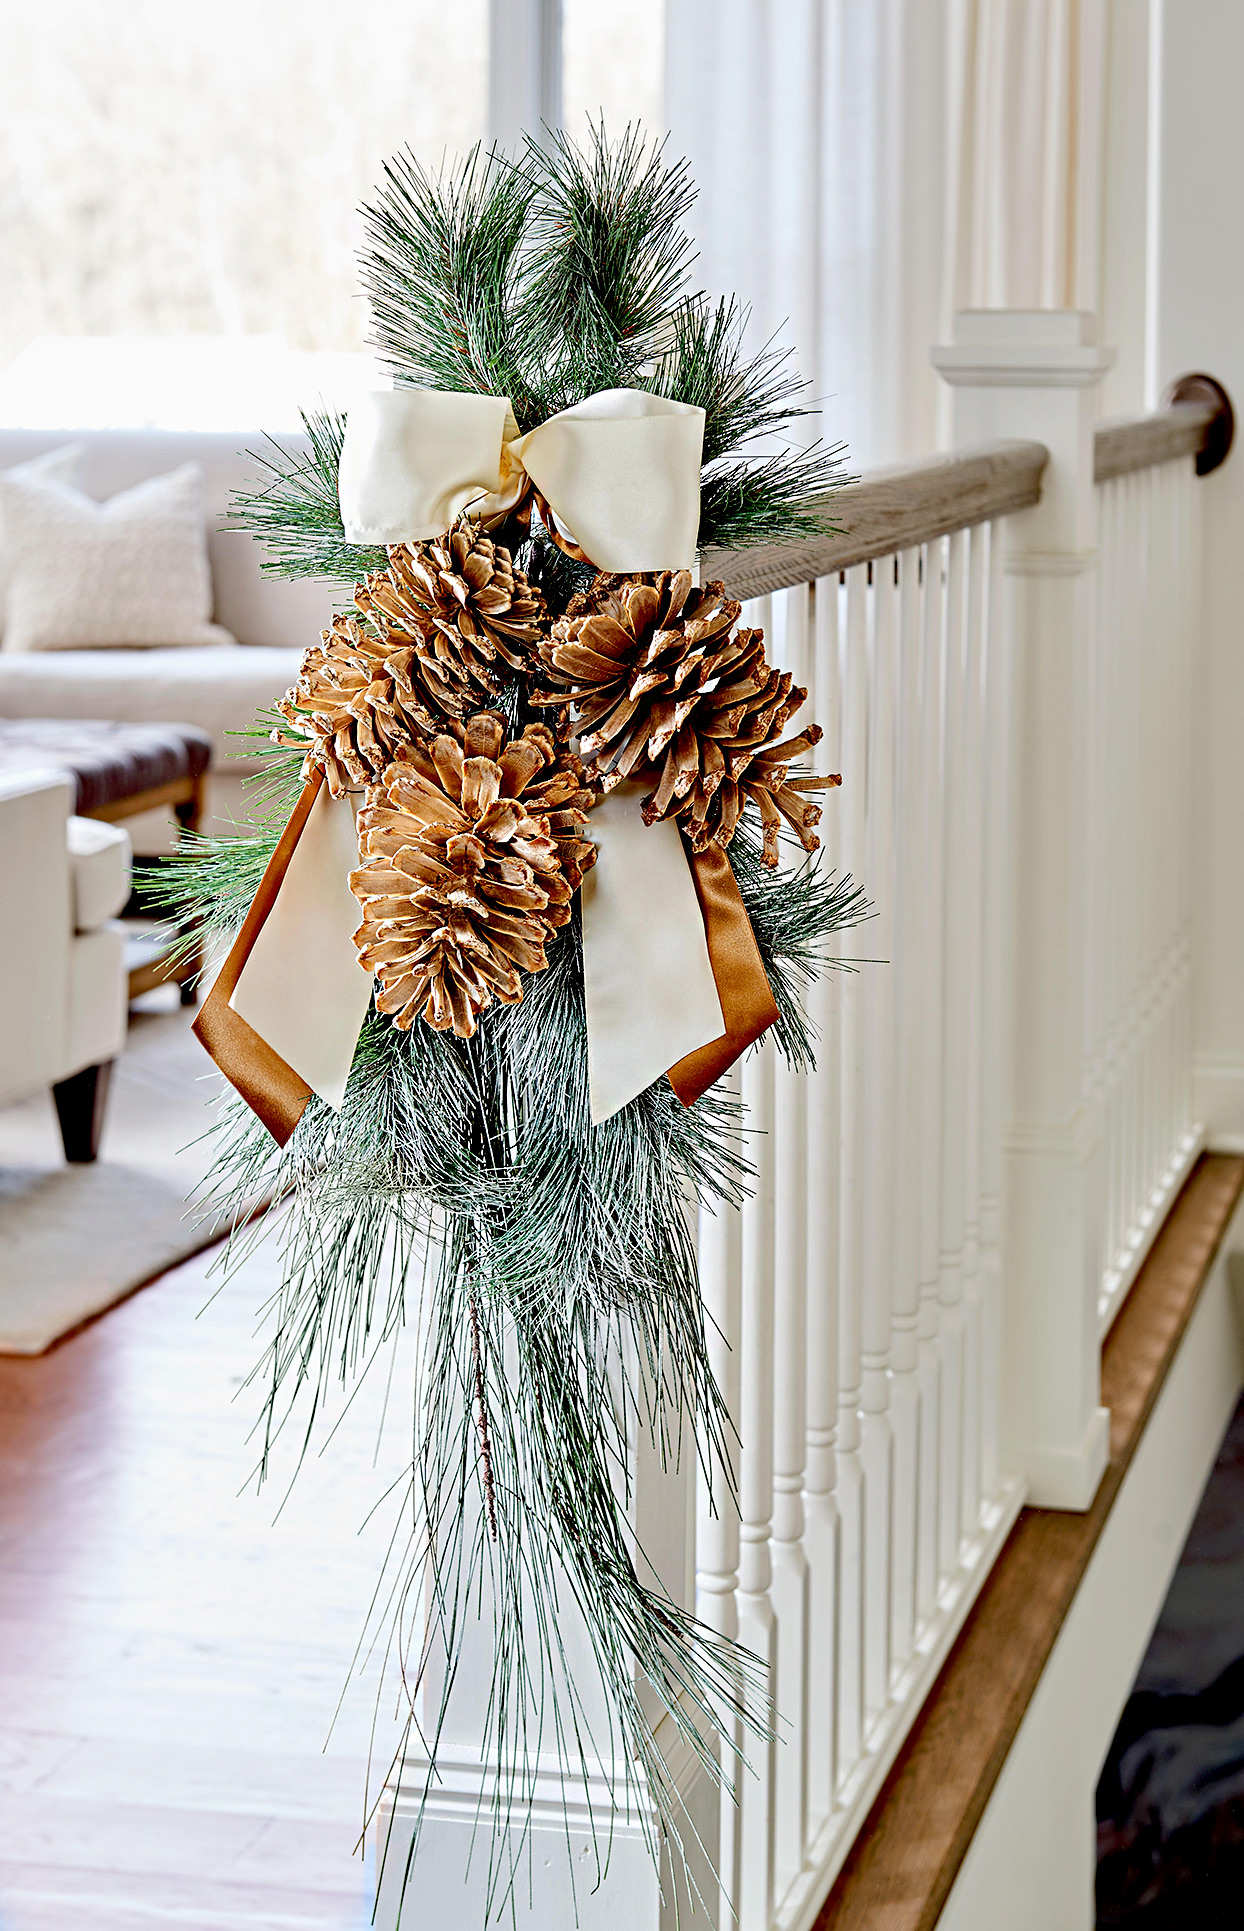 Bannister with evergreen and pinecone decoration